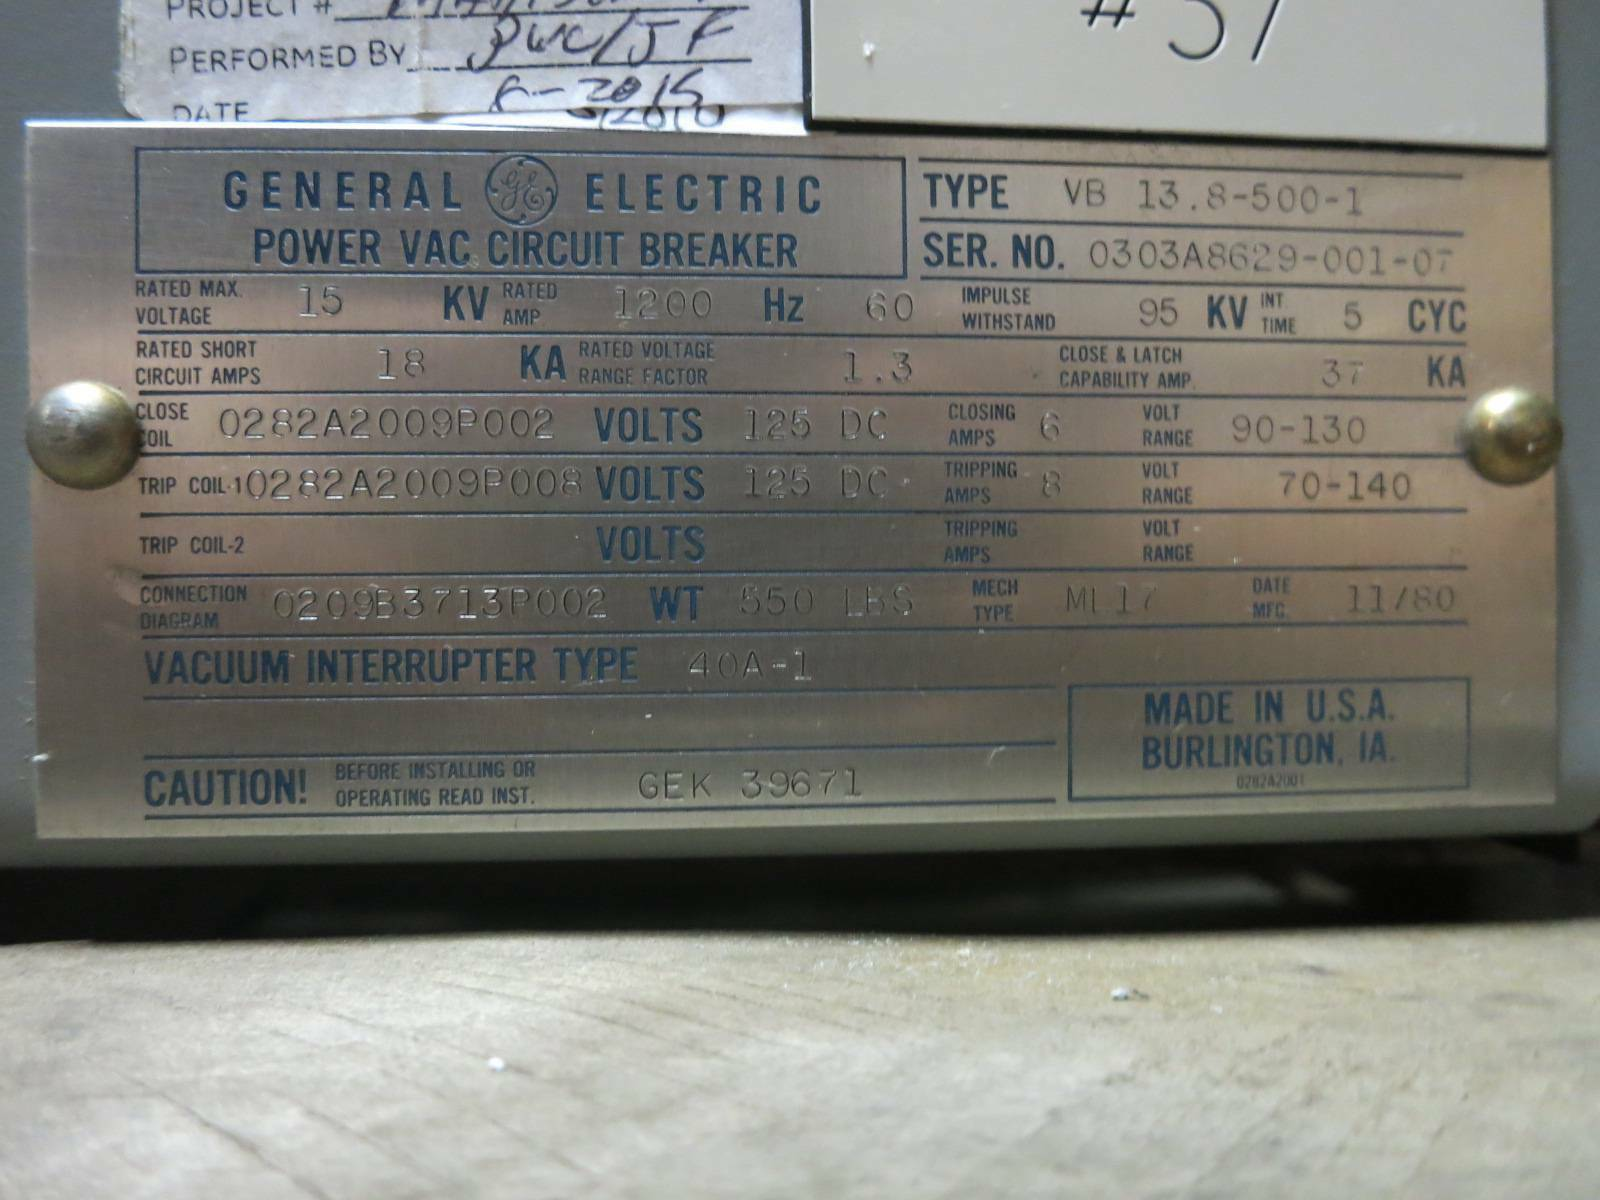 hight resolution of ge power vac 1200a vb 13 8 500 1 15 kv vacuum breaker general electric powervac for sale online ebay